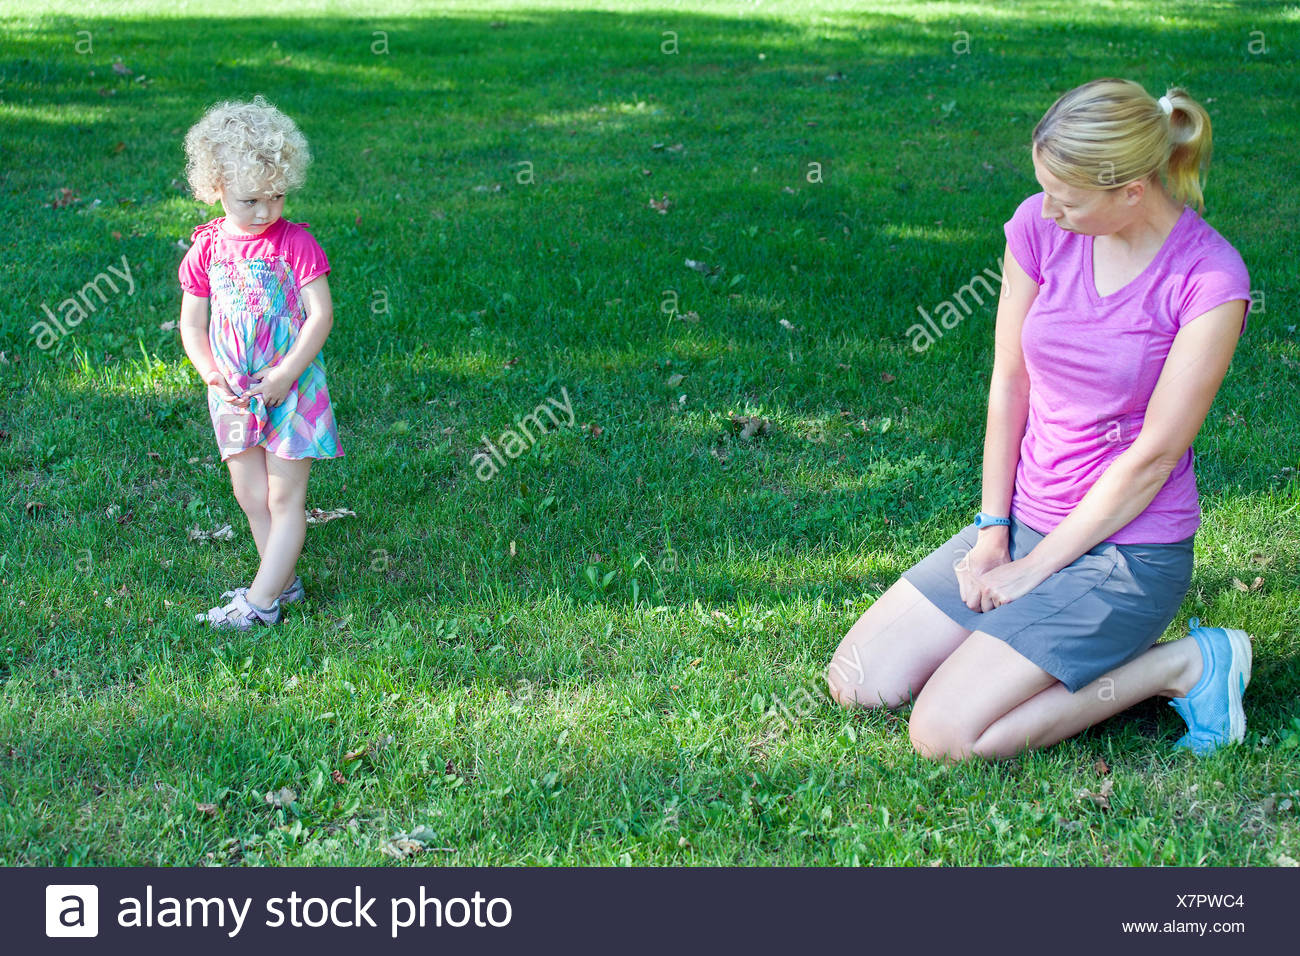 Mother copying daughter's (4-5) facial expression - Stock Image